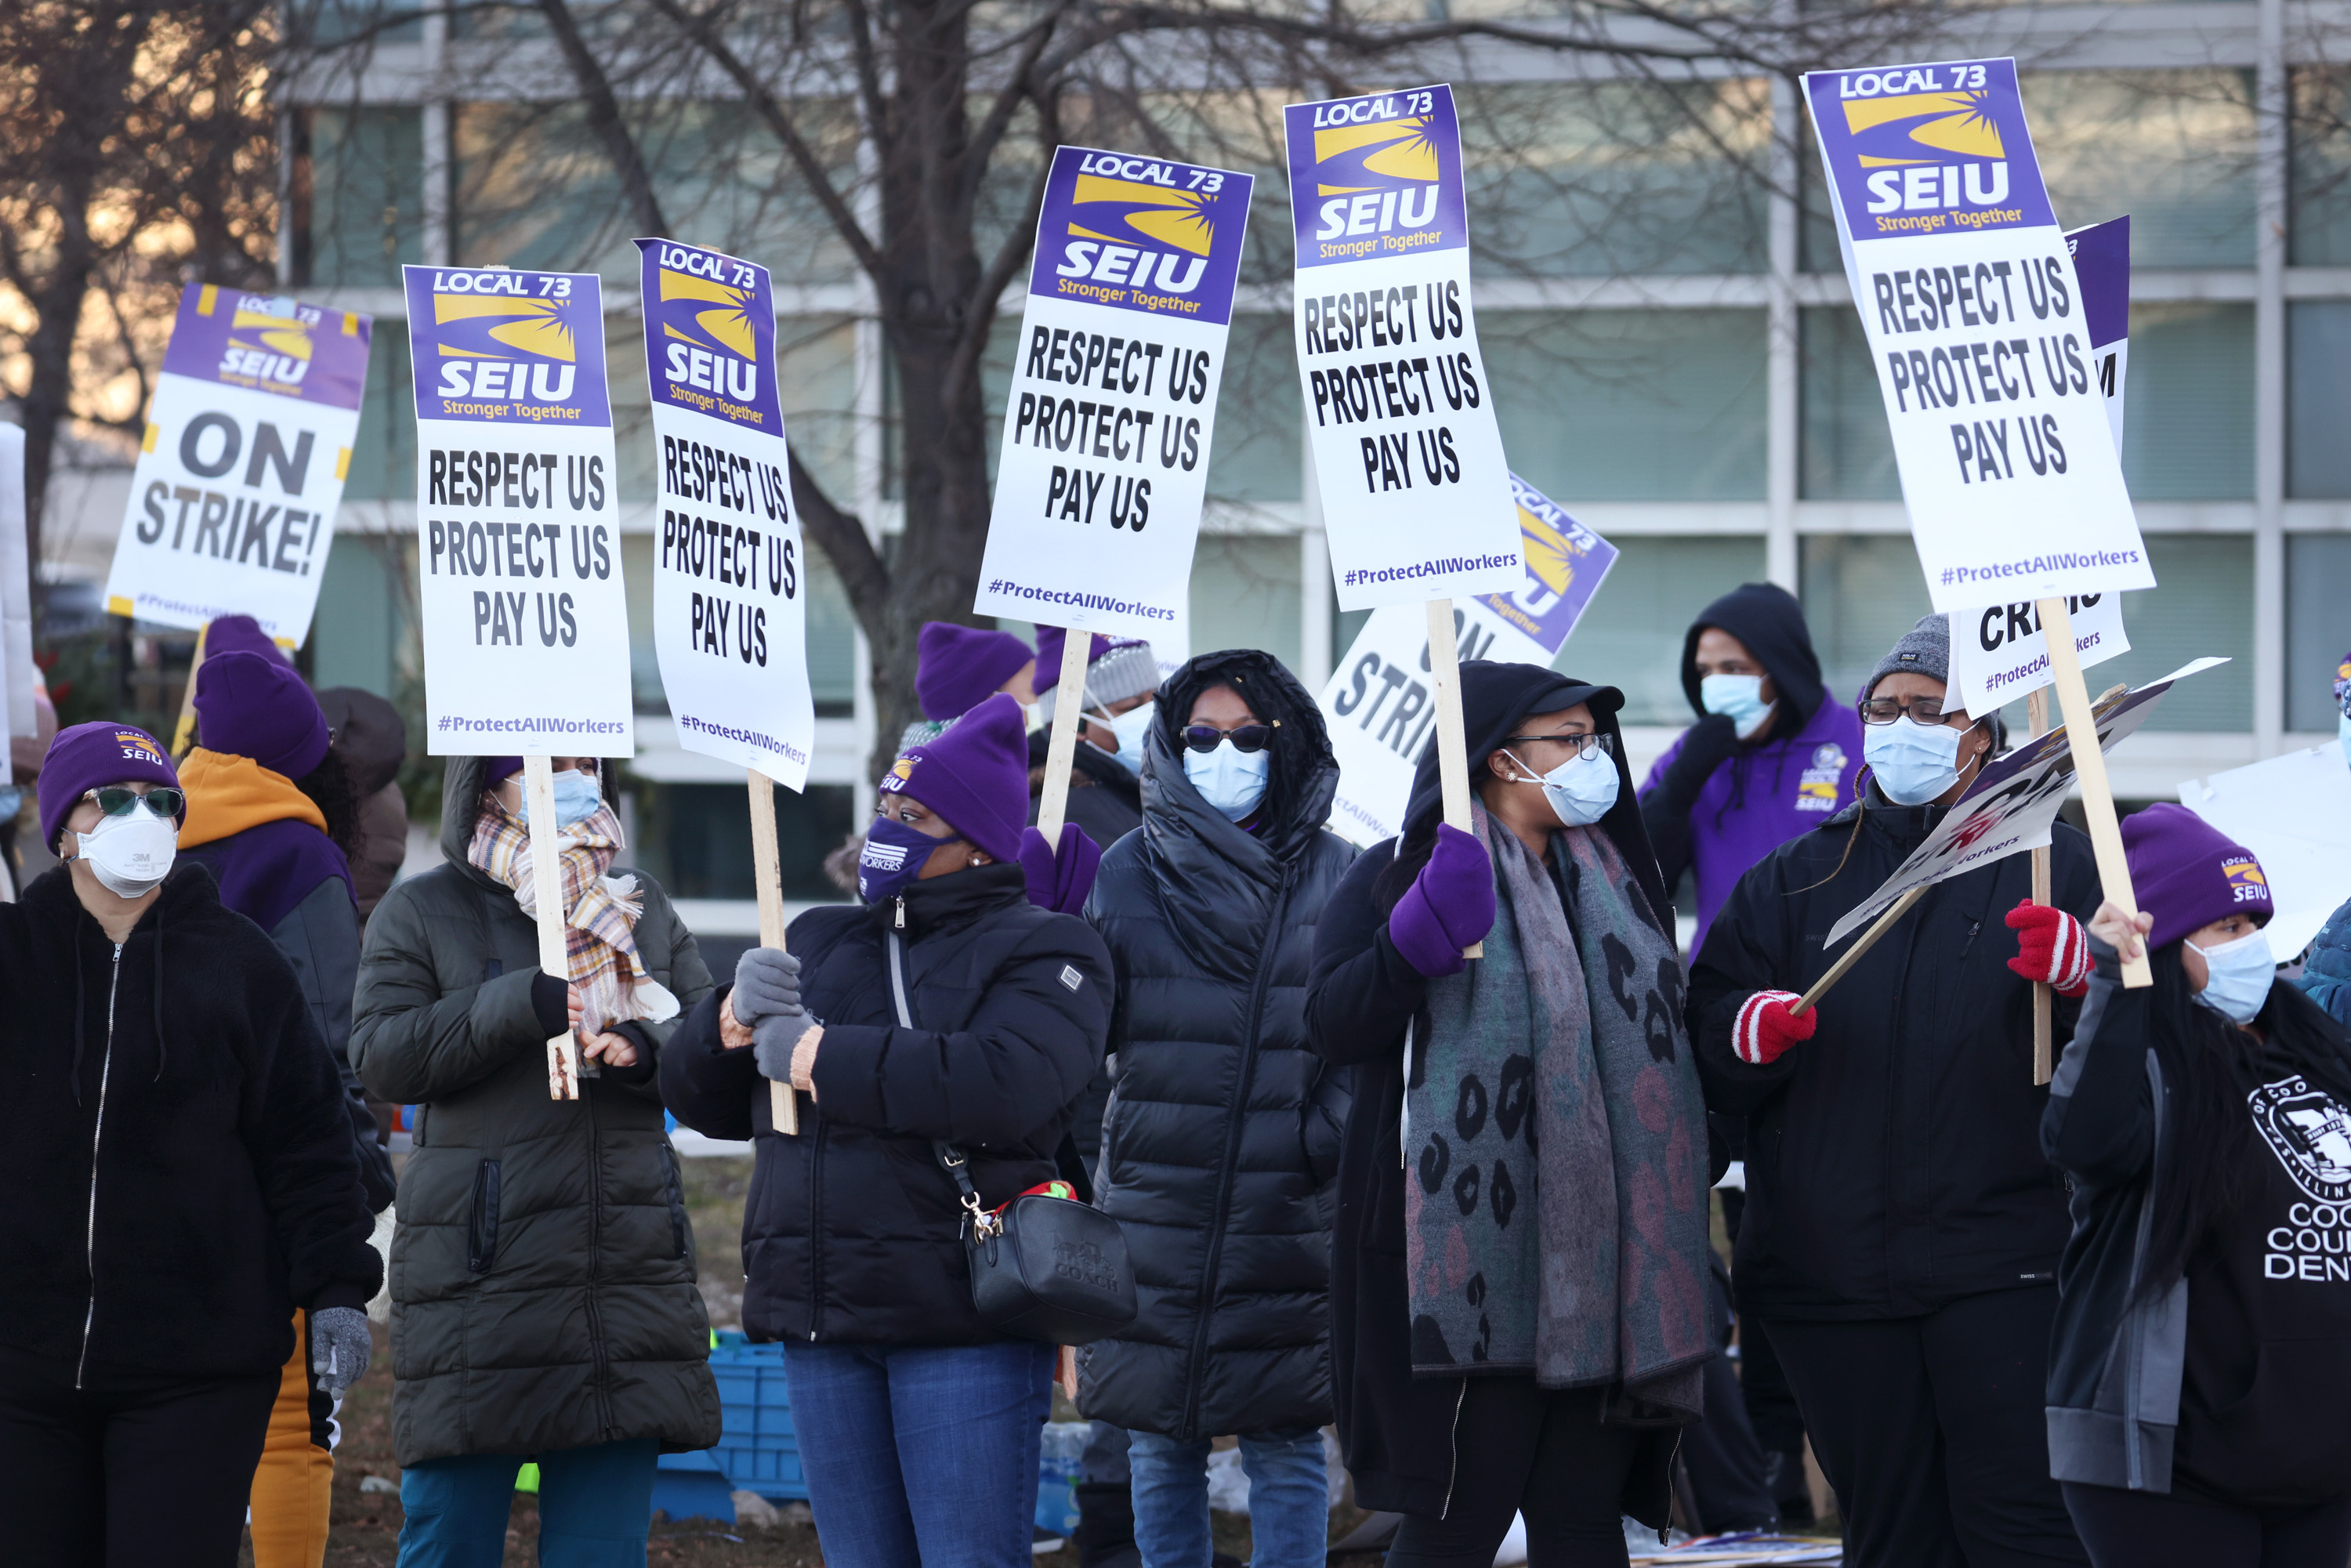 Healthcare workers with Cook County Health picket outside of Stroger Hospital as they stage a one-day strike on December 22, 2020 in Chicago. Among other issues, the workers were demanding an additional $5-per-hour for those who work with COVID-19 patients, adequate PPE supplies for all workers, and the opportunity to work from home when possible.